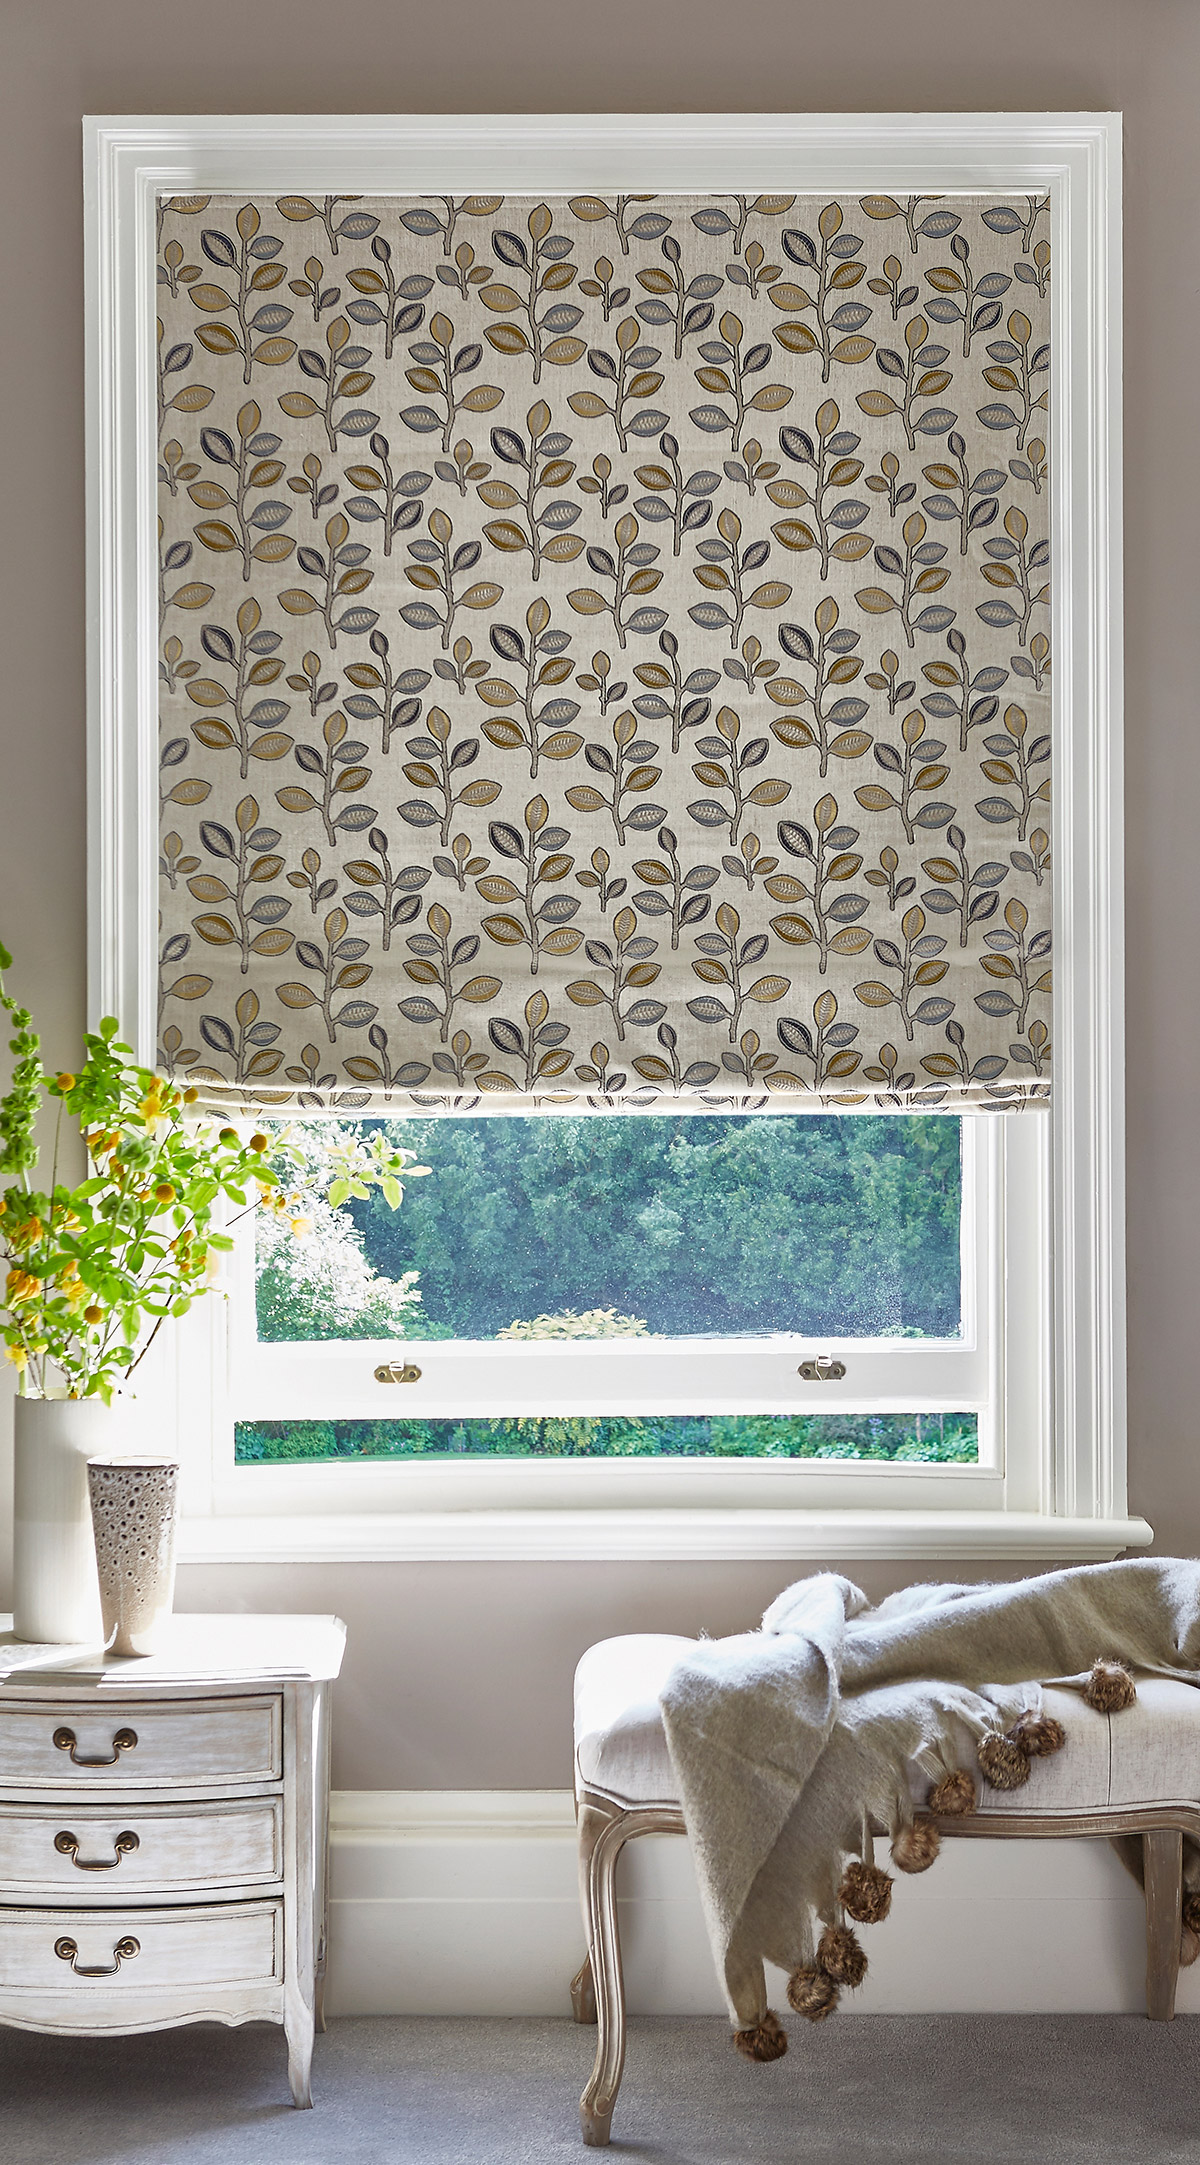 Bourton Breeze Roman Blind from SLX